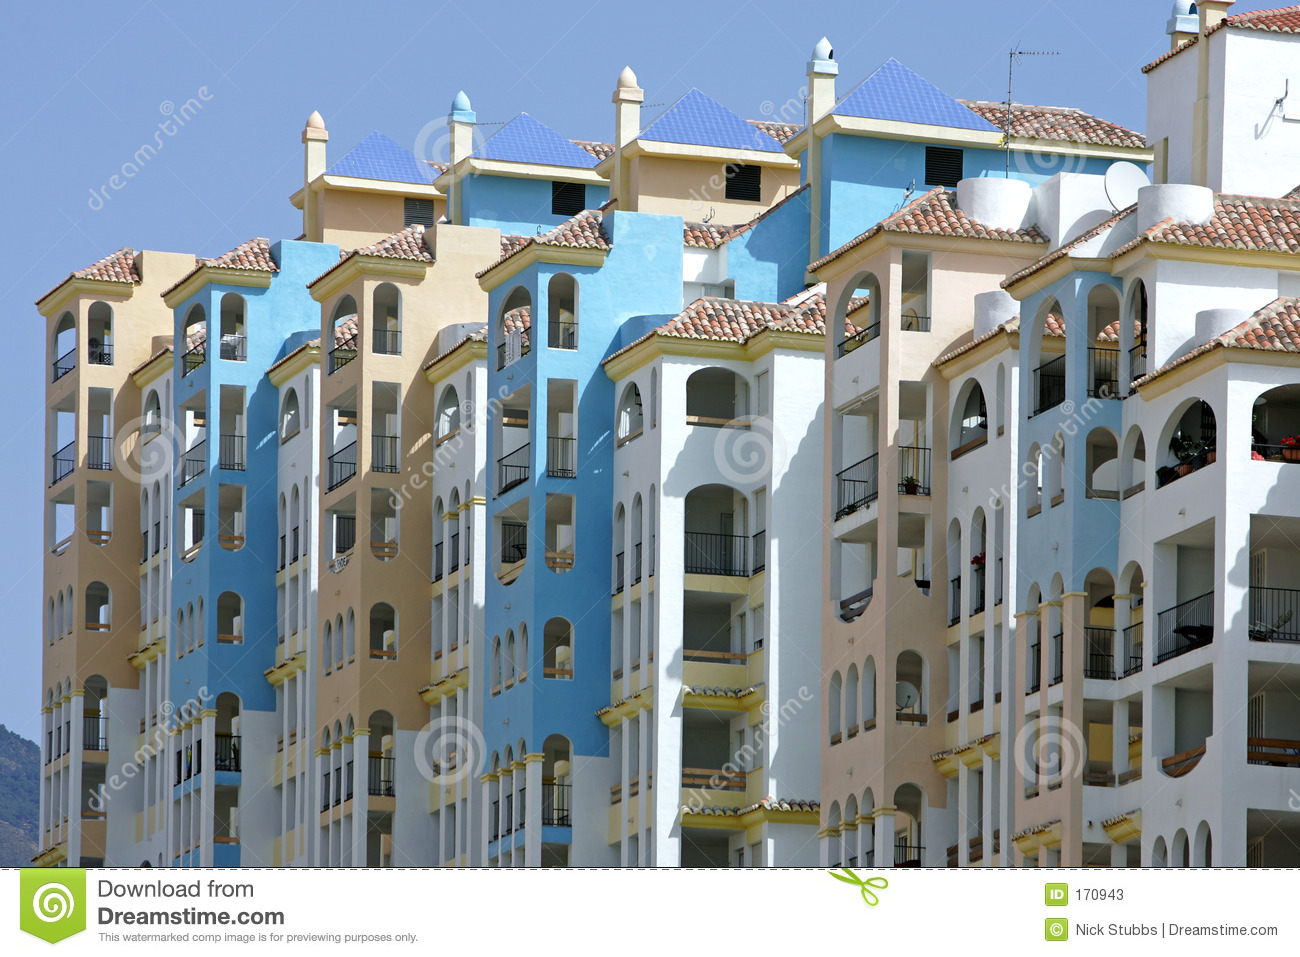 row of colorful sunny apartments in spain stock image - image: 170943